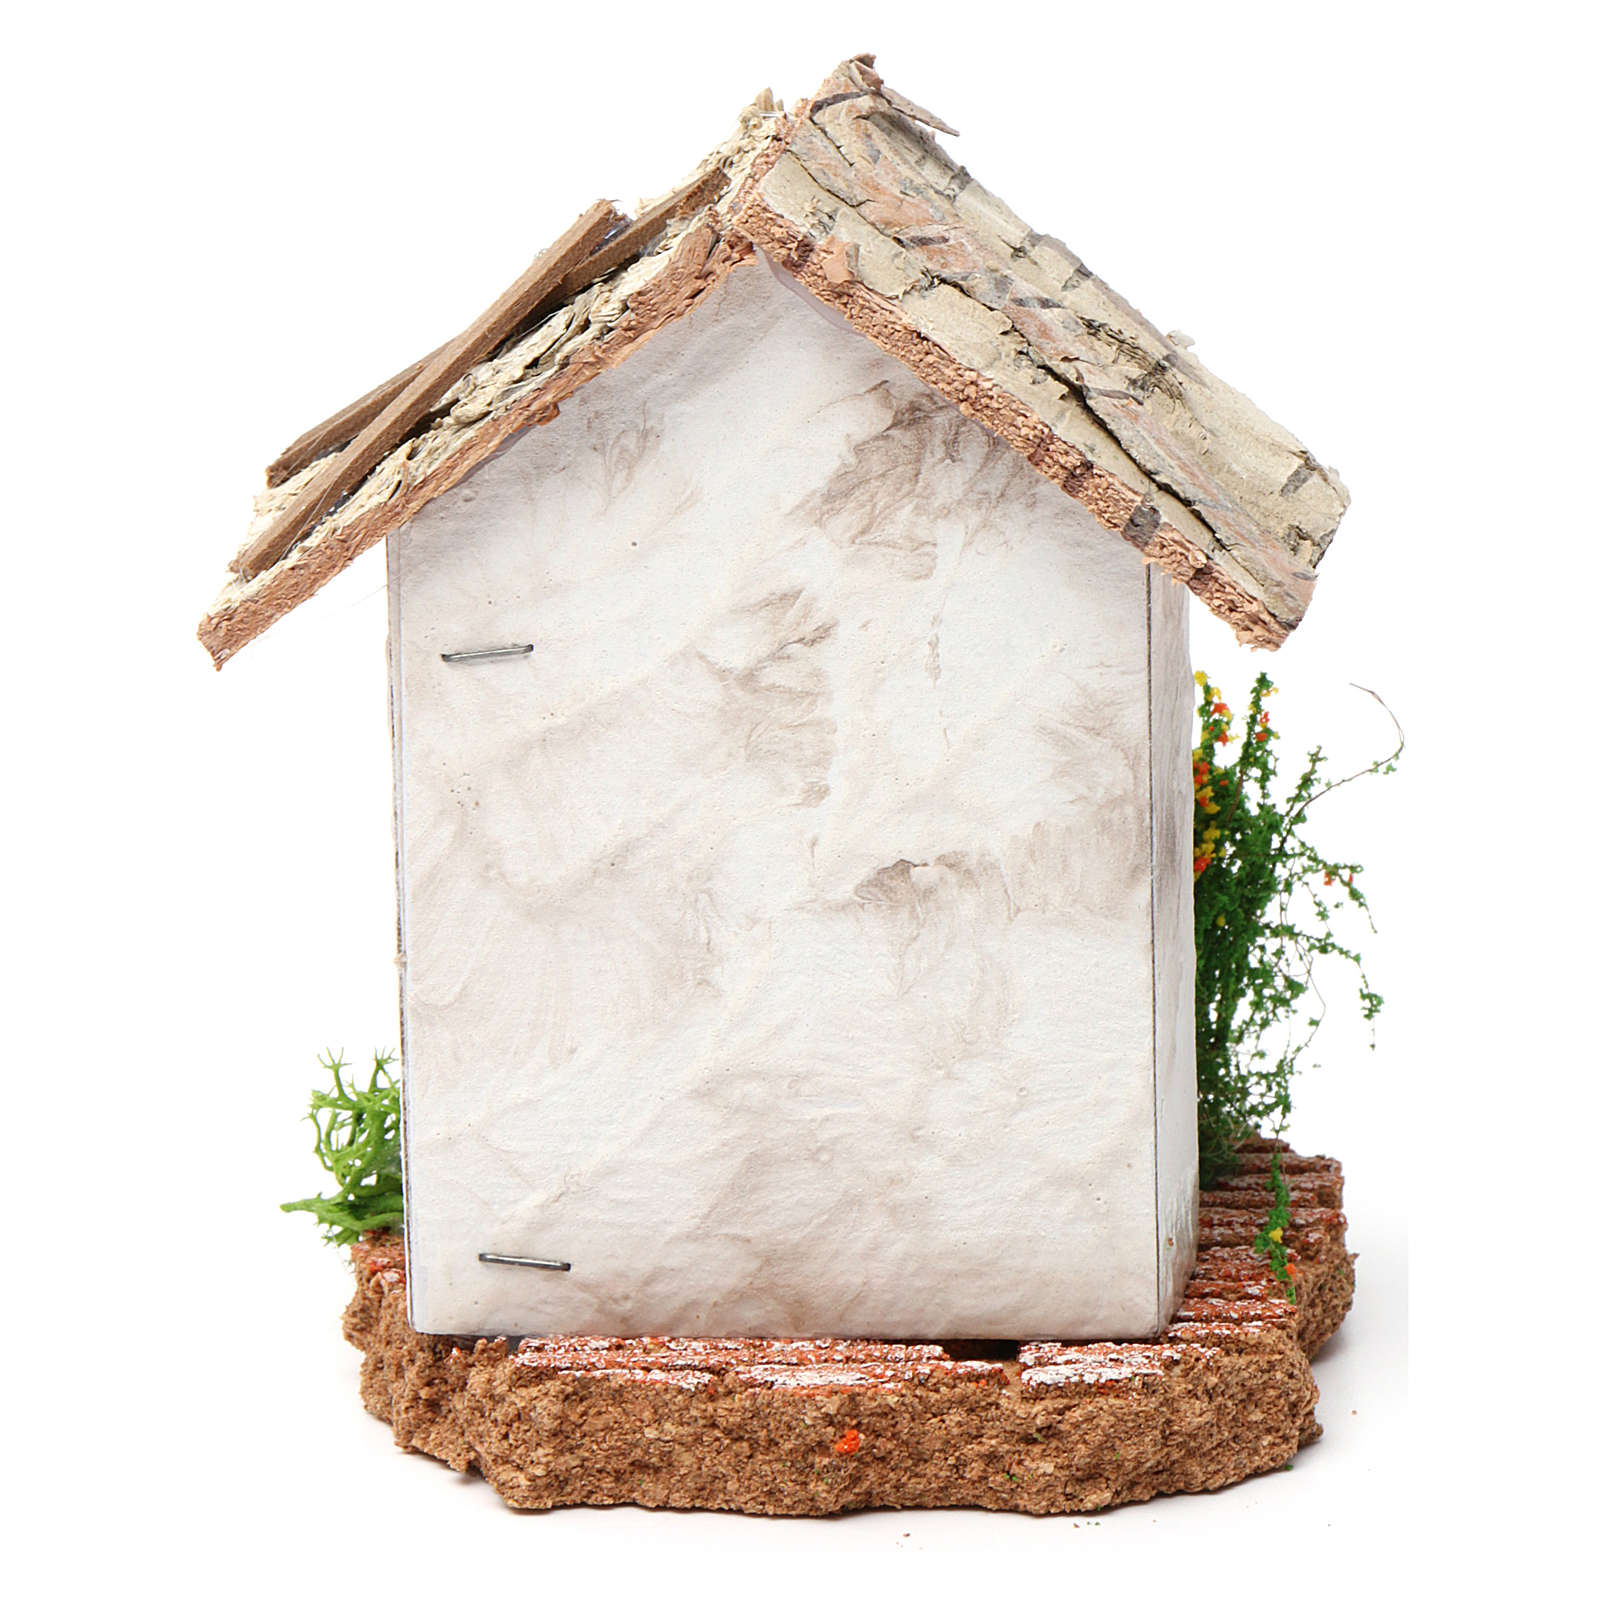 Rustic house 10X7X7 cm for Nativity 4